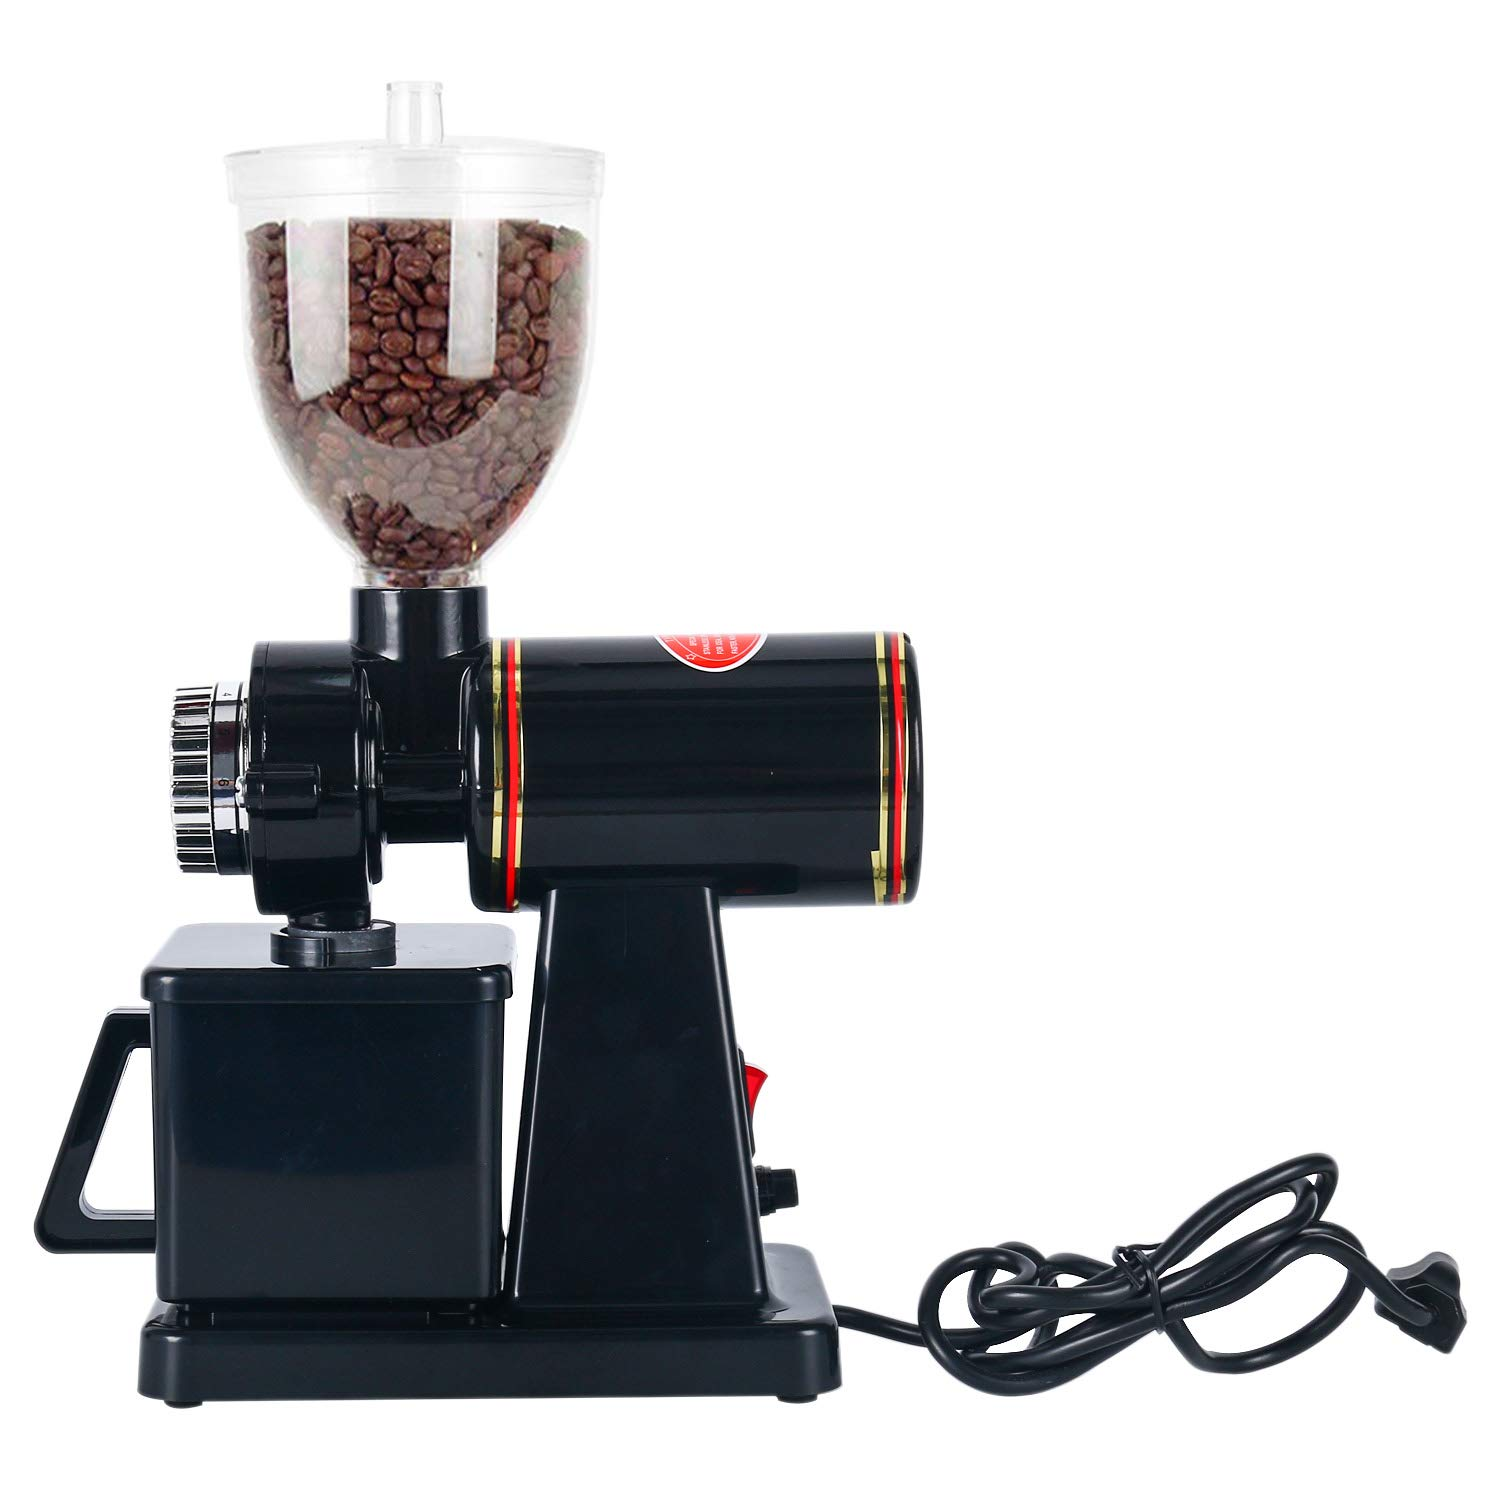 Homend Automatic 110V Electric Burr Coffee Grinder Mill Grinder Coffee Bean Powder Grinding Machine, 8 Levels of Thickness Adjustment (Black)